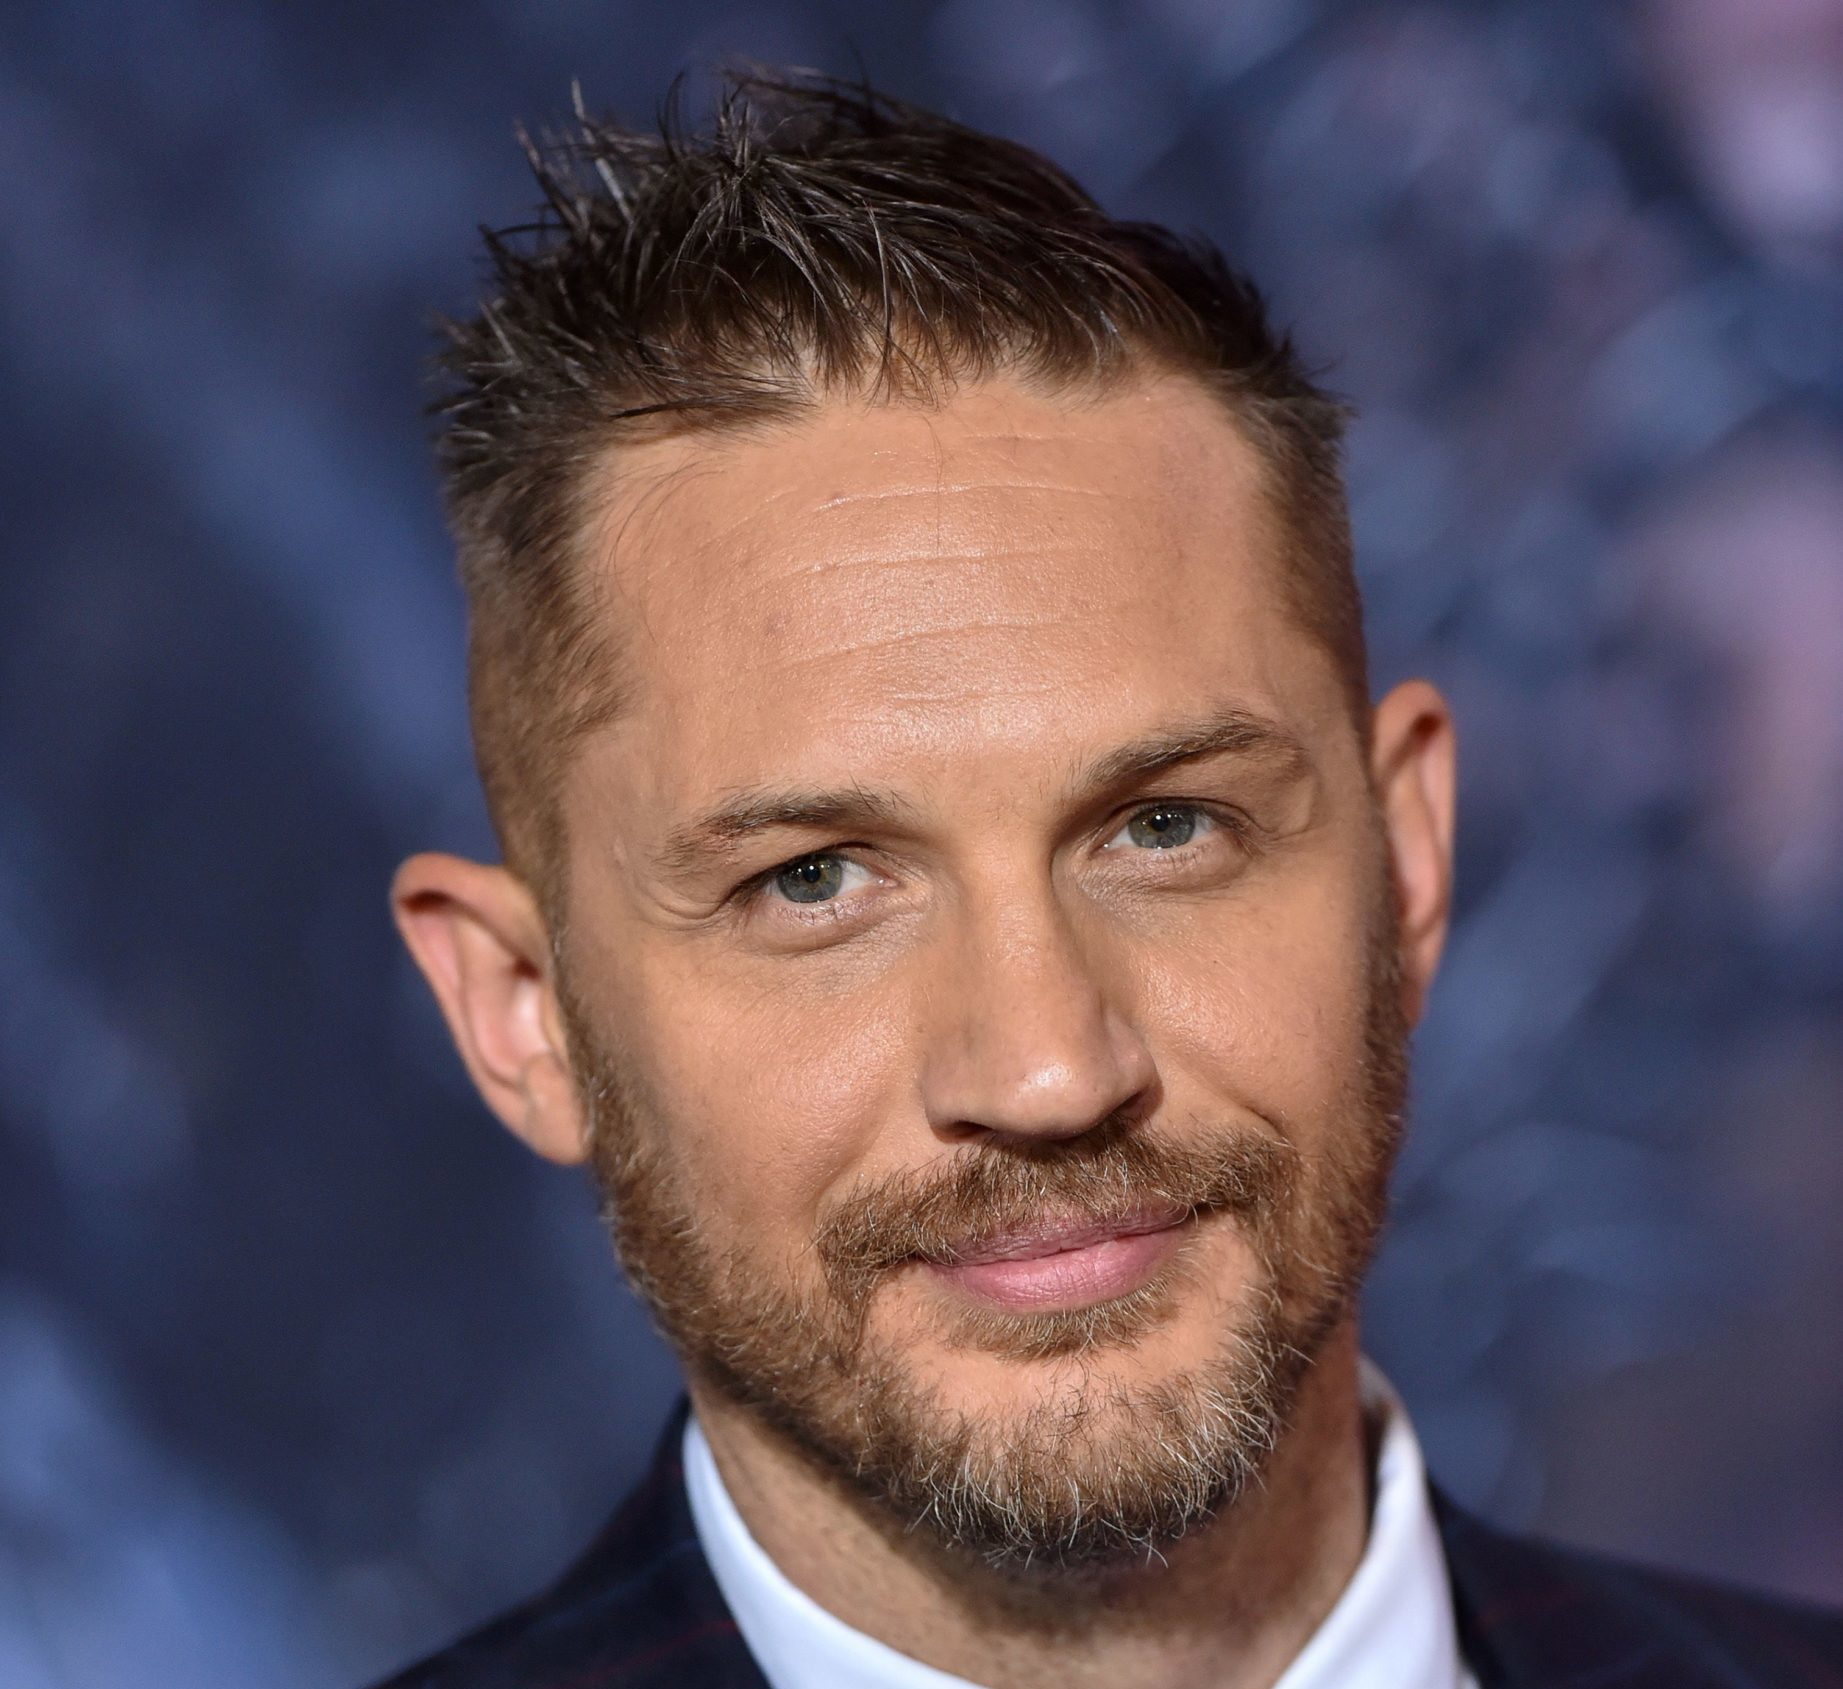 tom hardy attends the premiere of columbia pictures venom news photo 1587931757 scaled e1611677872590 40 Things You Didn't Know About Tom Hardy